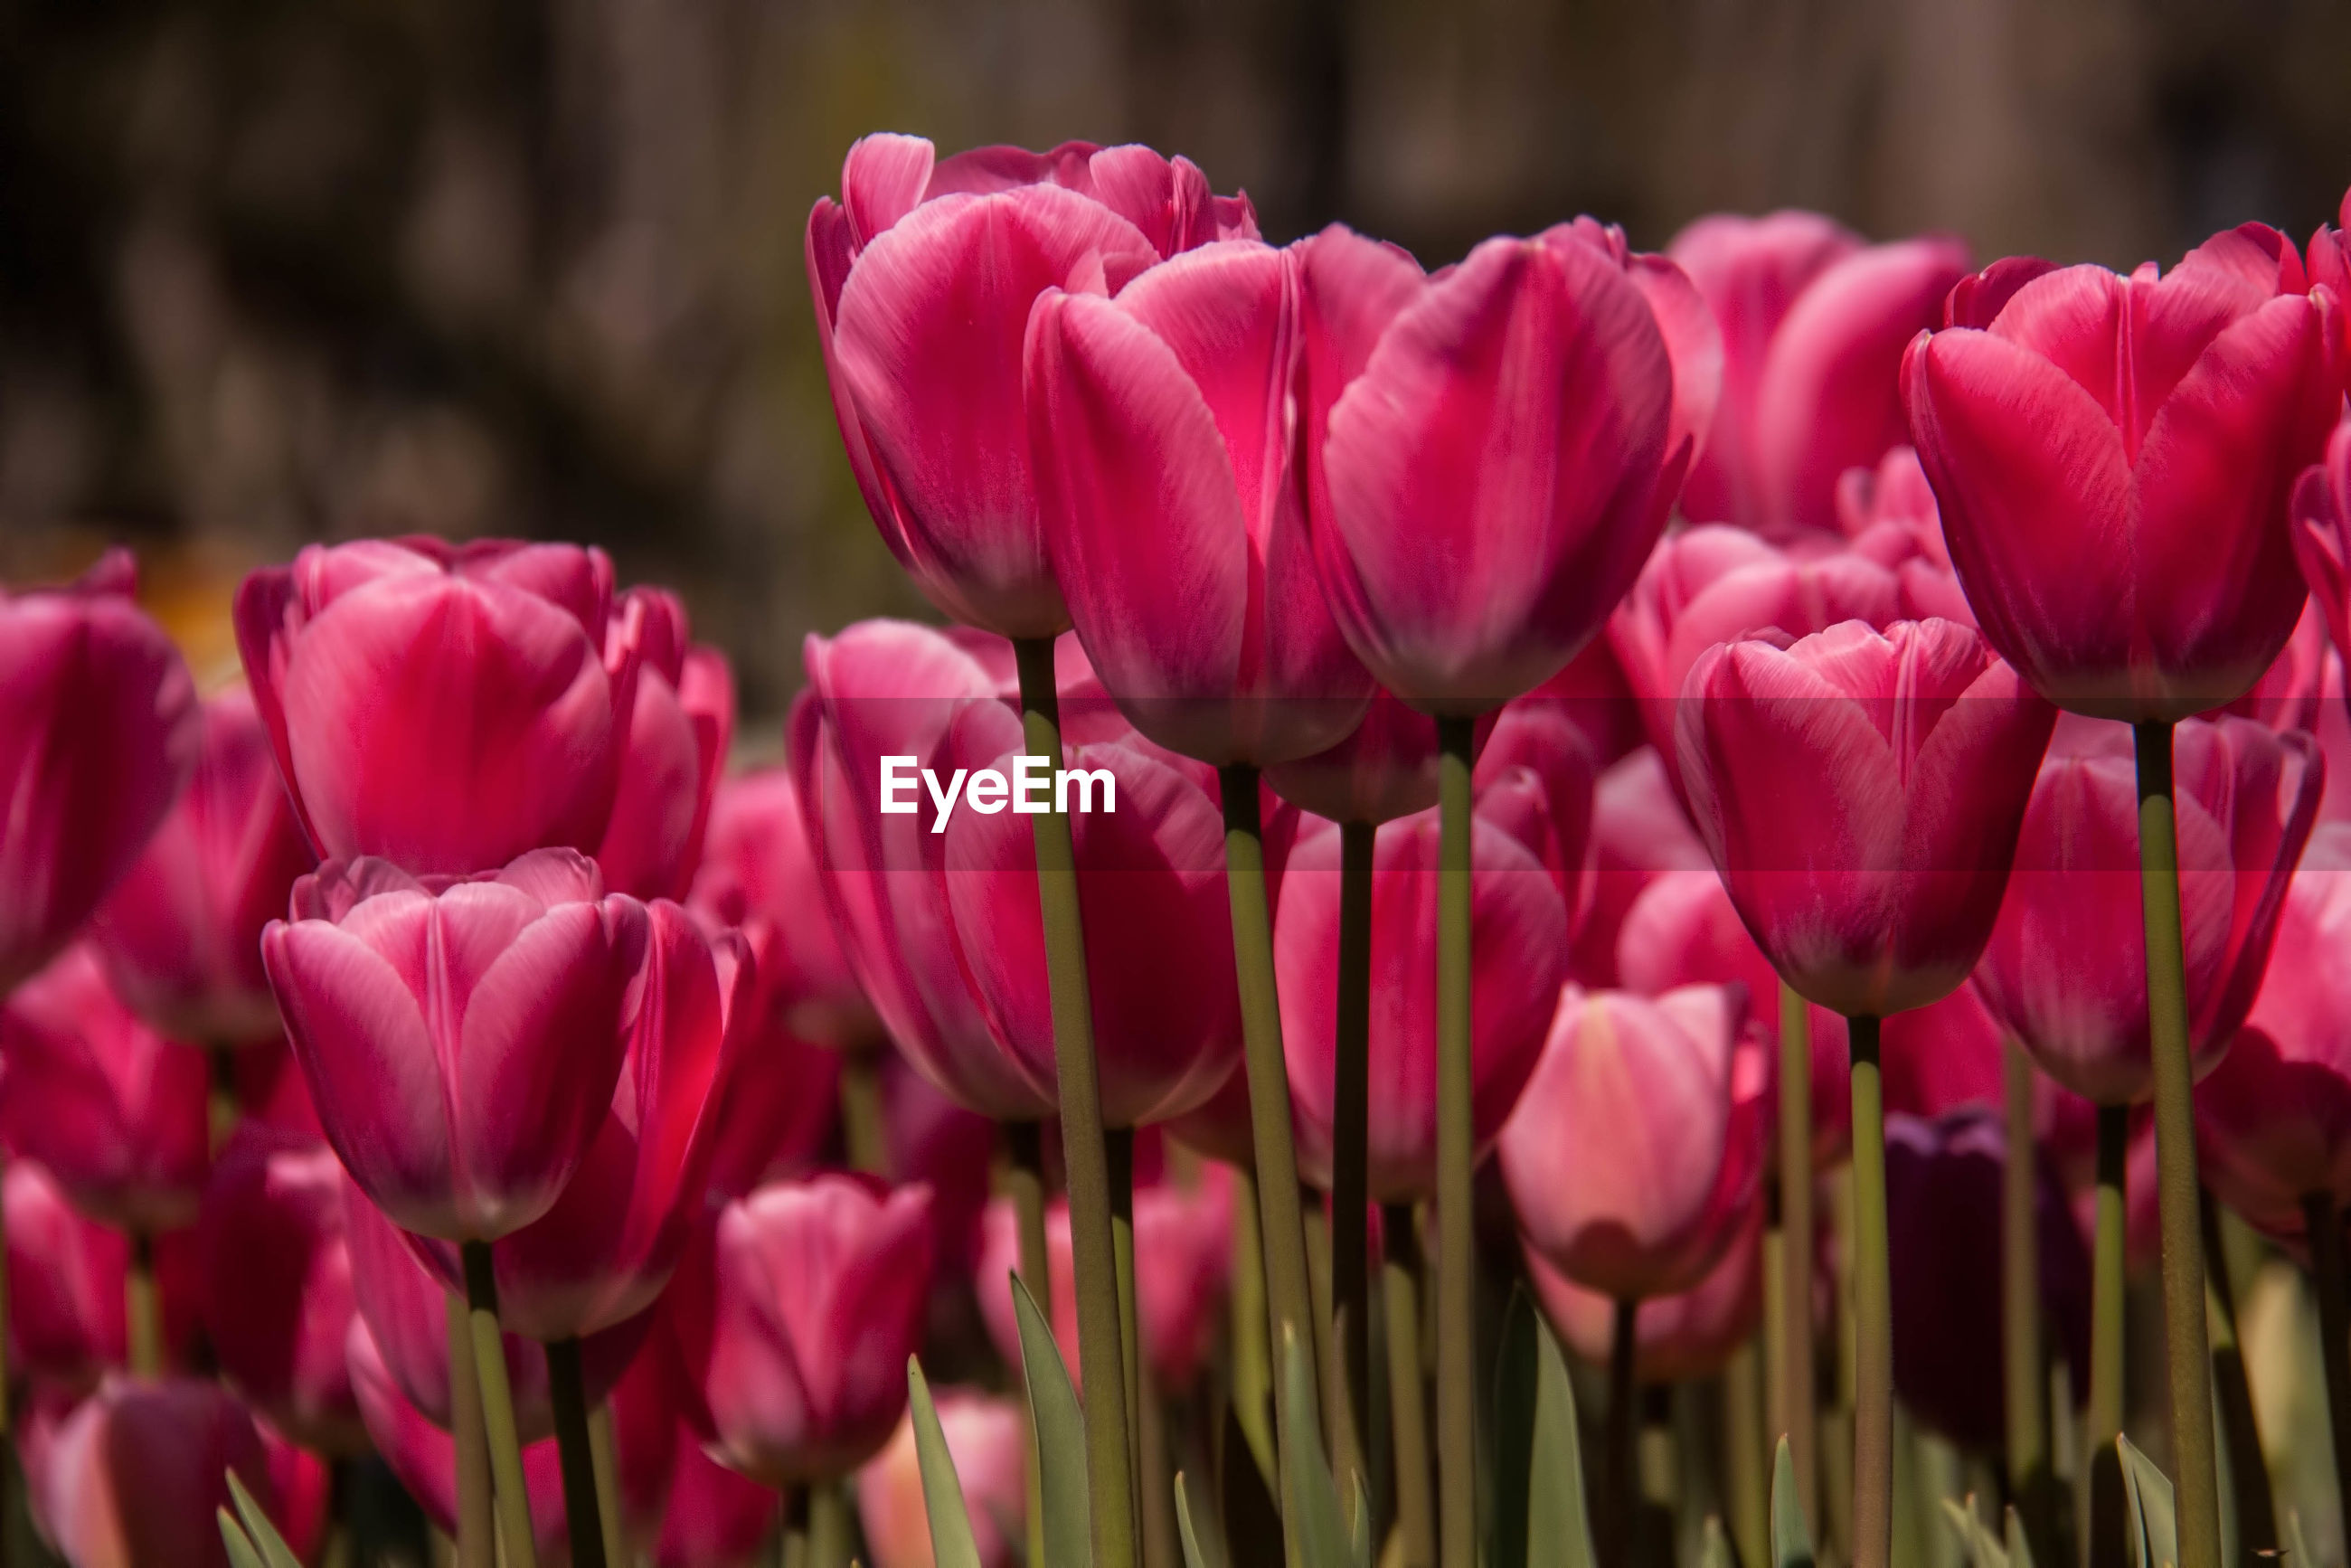 CLOSE-UP OF PINK TULIPS BLOOMING